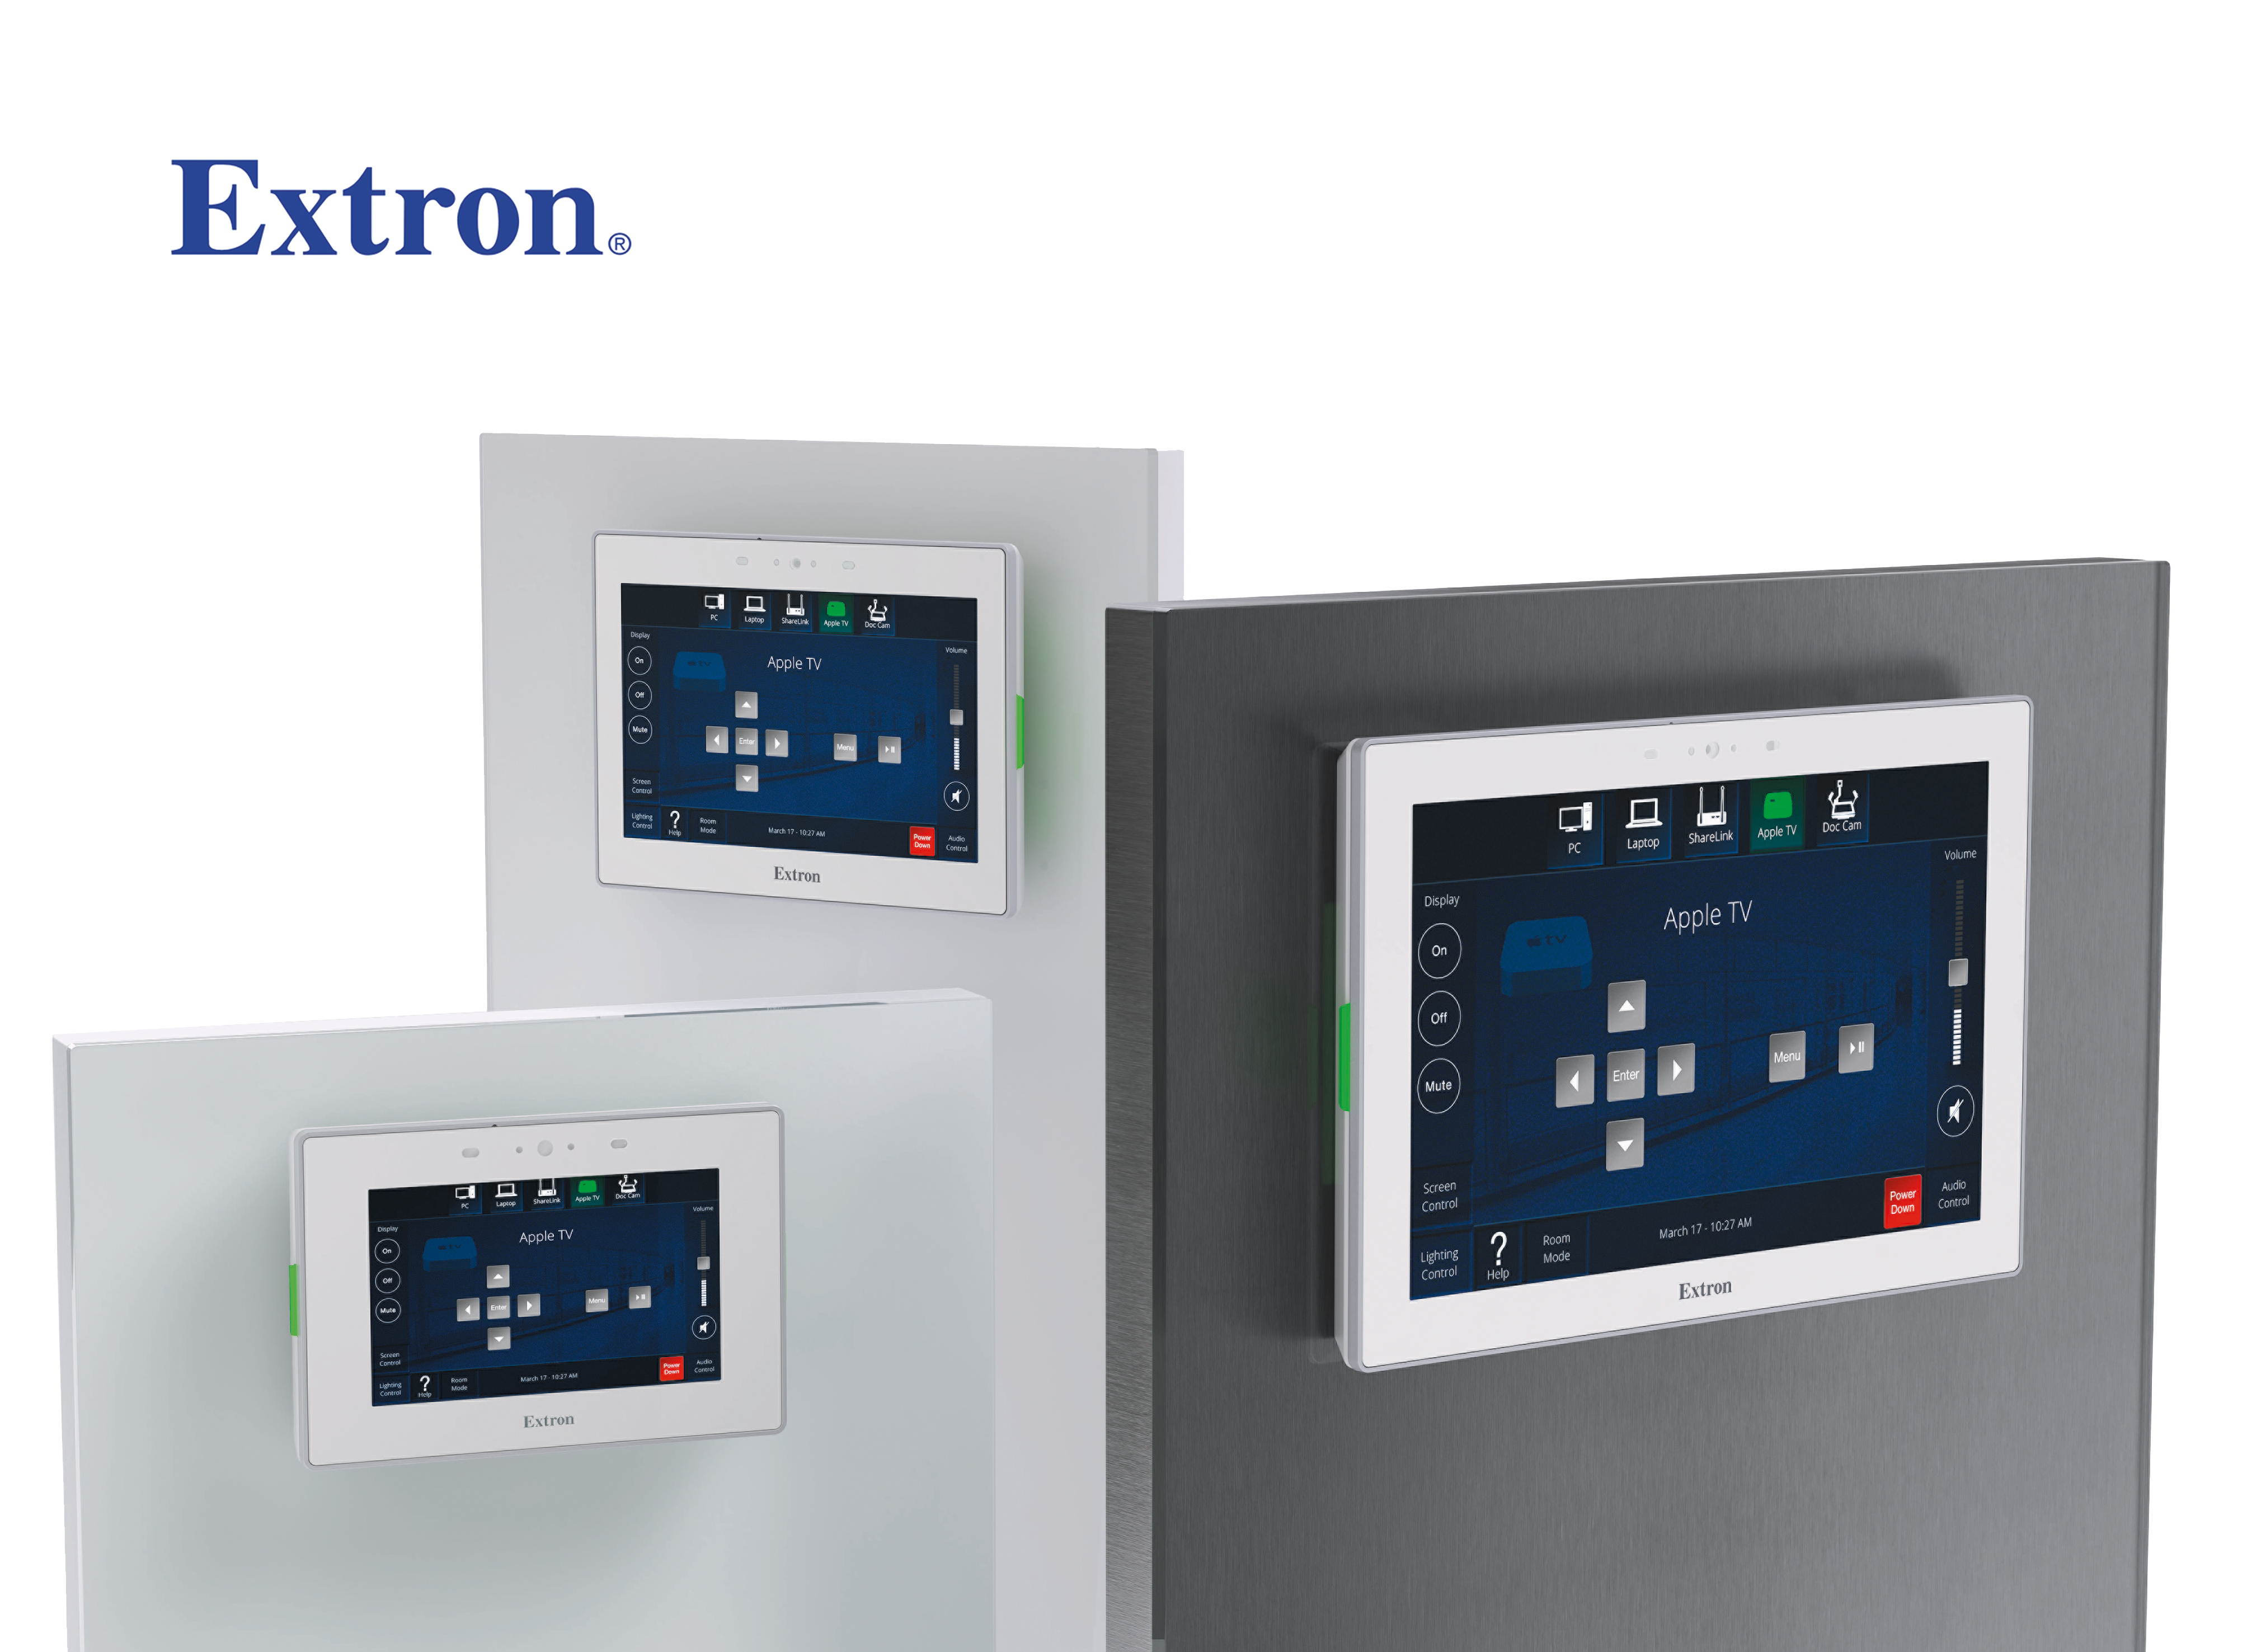 Extron touch pads